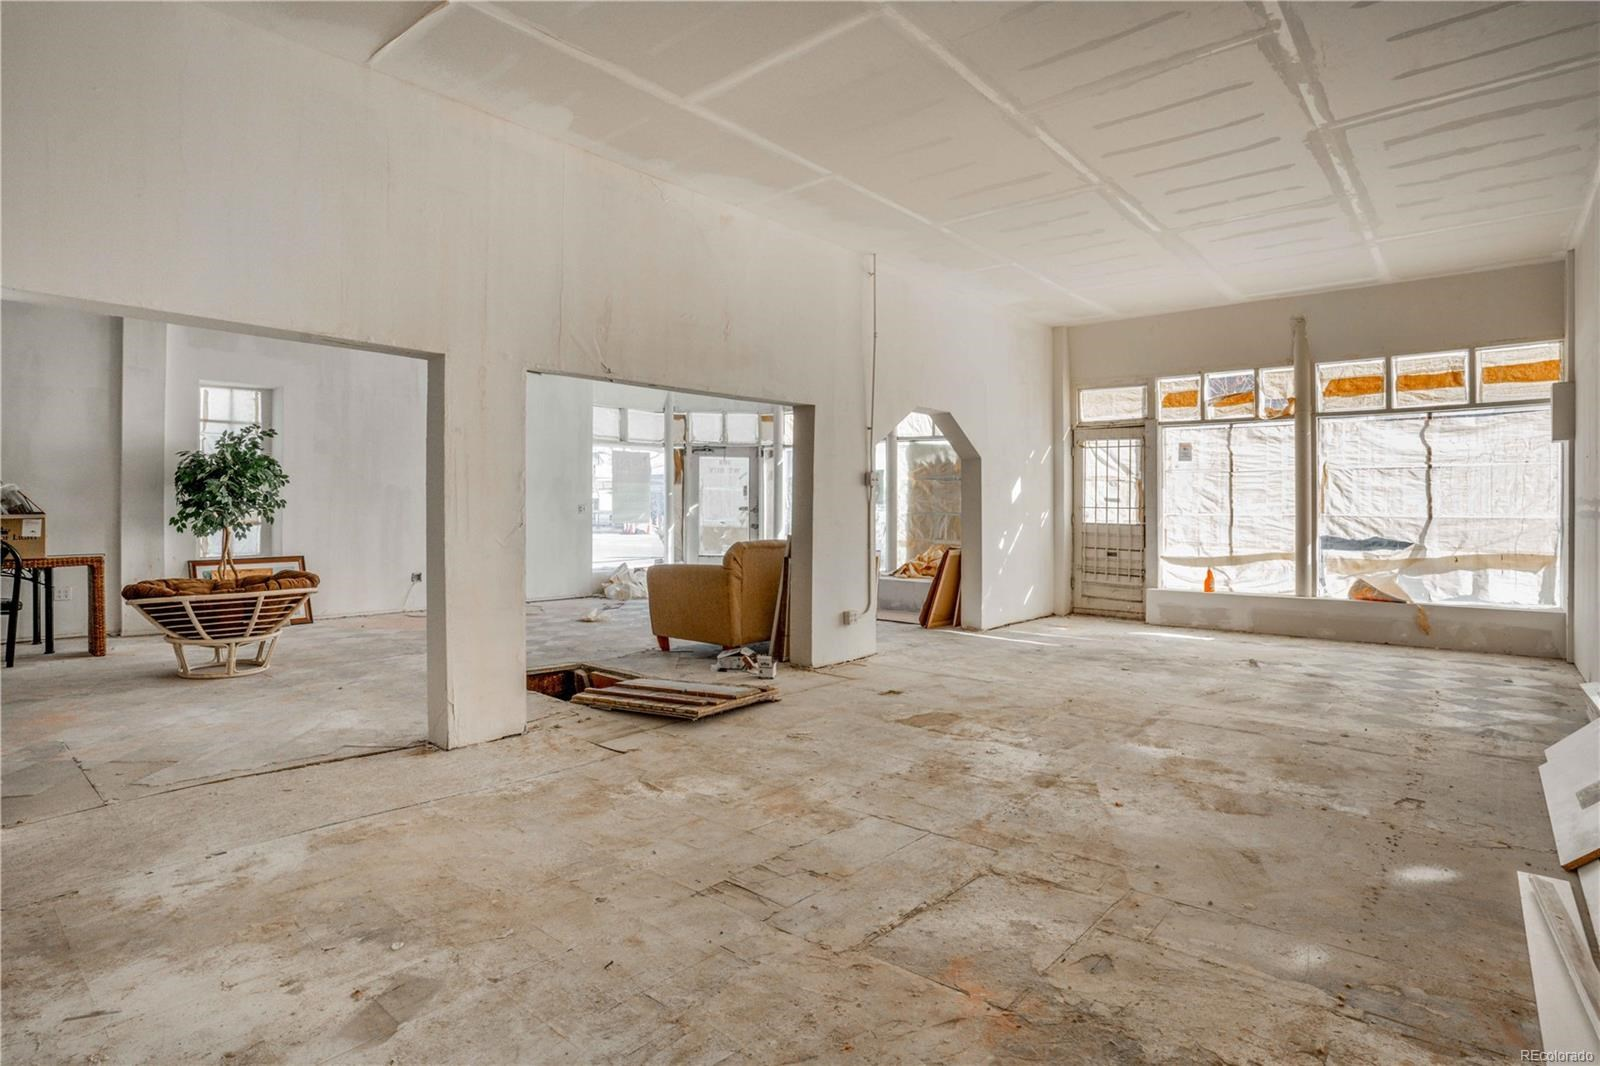 MLS# 7688718 - 7 - 1401 S Broadway  #C-1, Denver, CO 80210